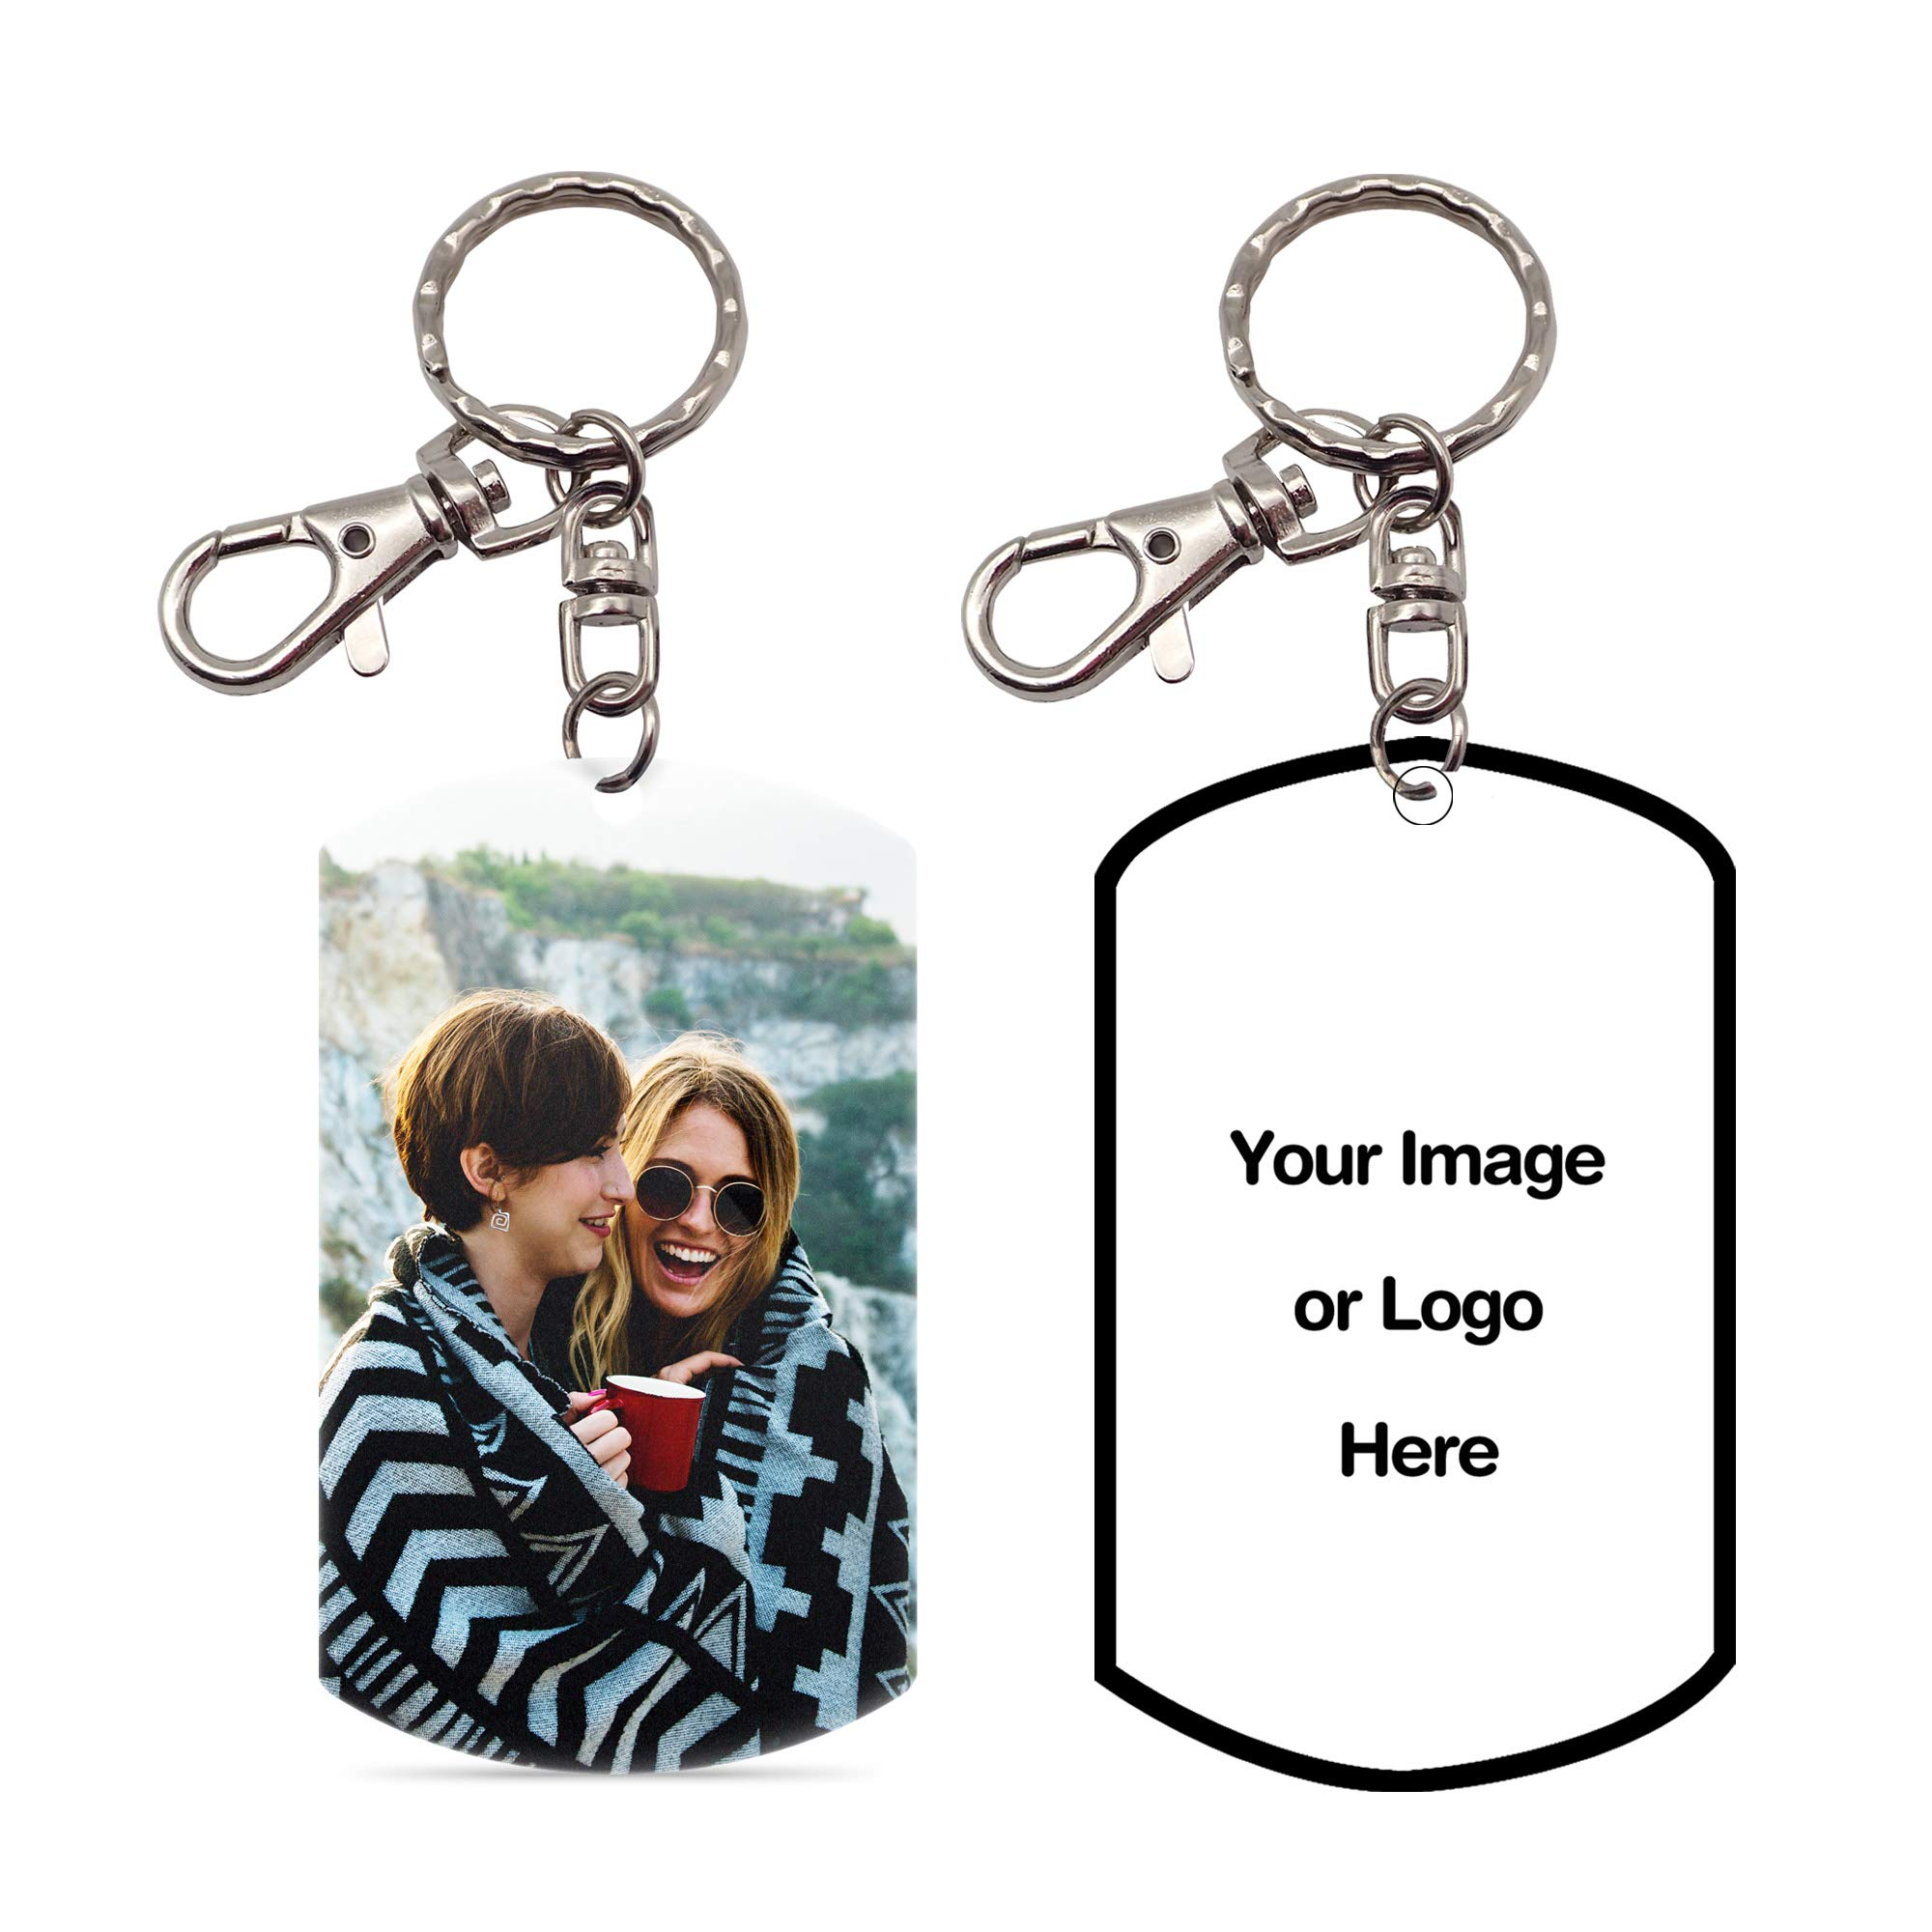 Pearl Pix Custom Key Chain, Personalized Photo Key Chain, Double Side, 1.8'' x 2.9'' Military Tag Shape, Photo on Each Side, Great Gift for Any Occasion - Make Your Own Key Chain by Pearl Pix